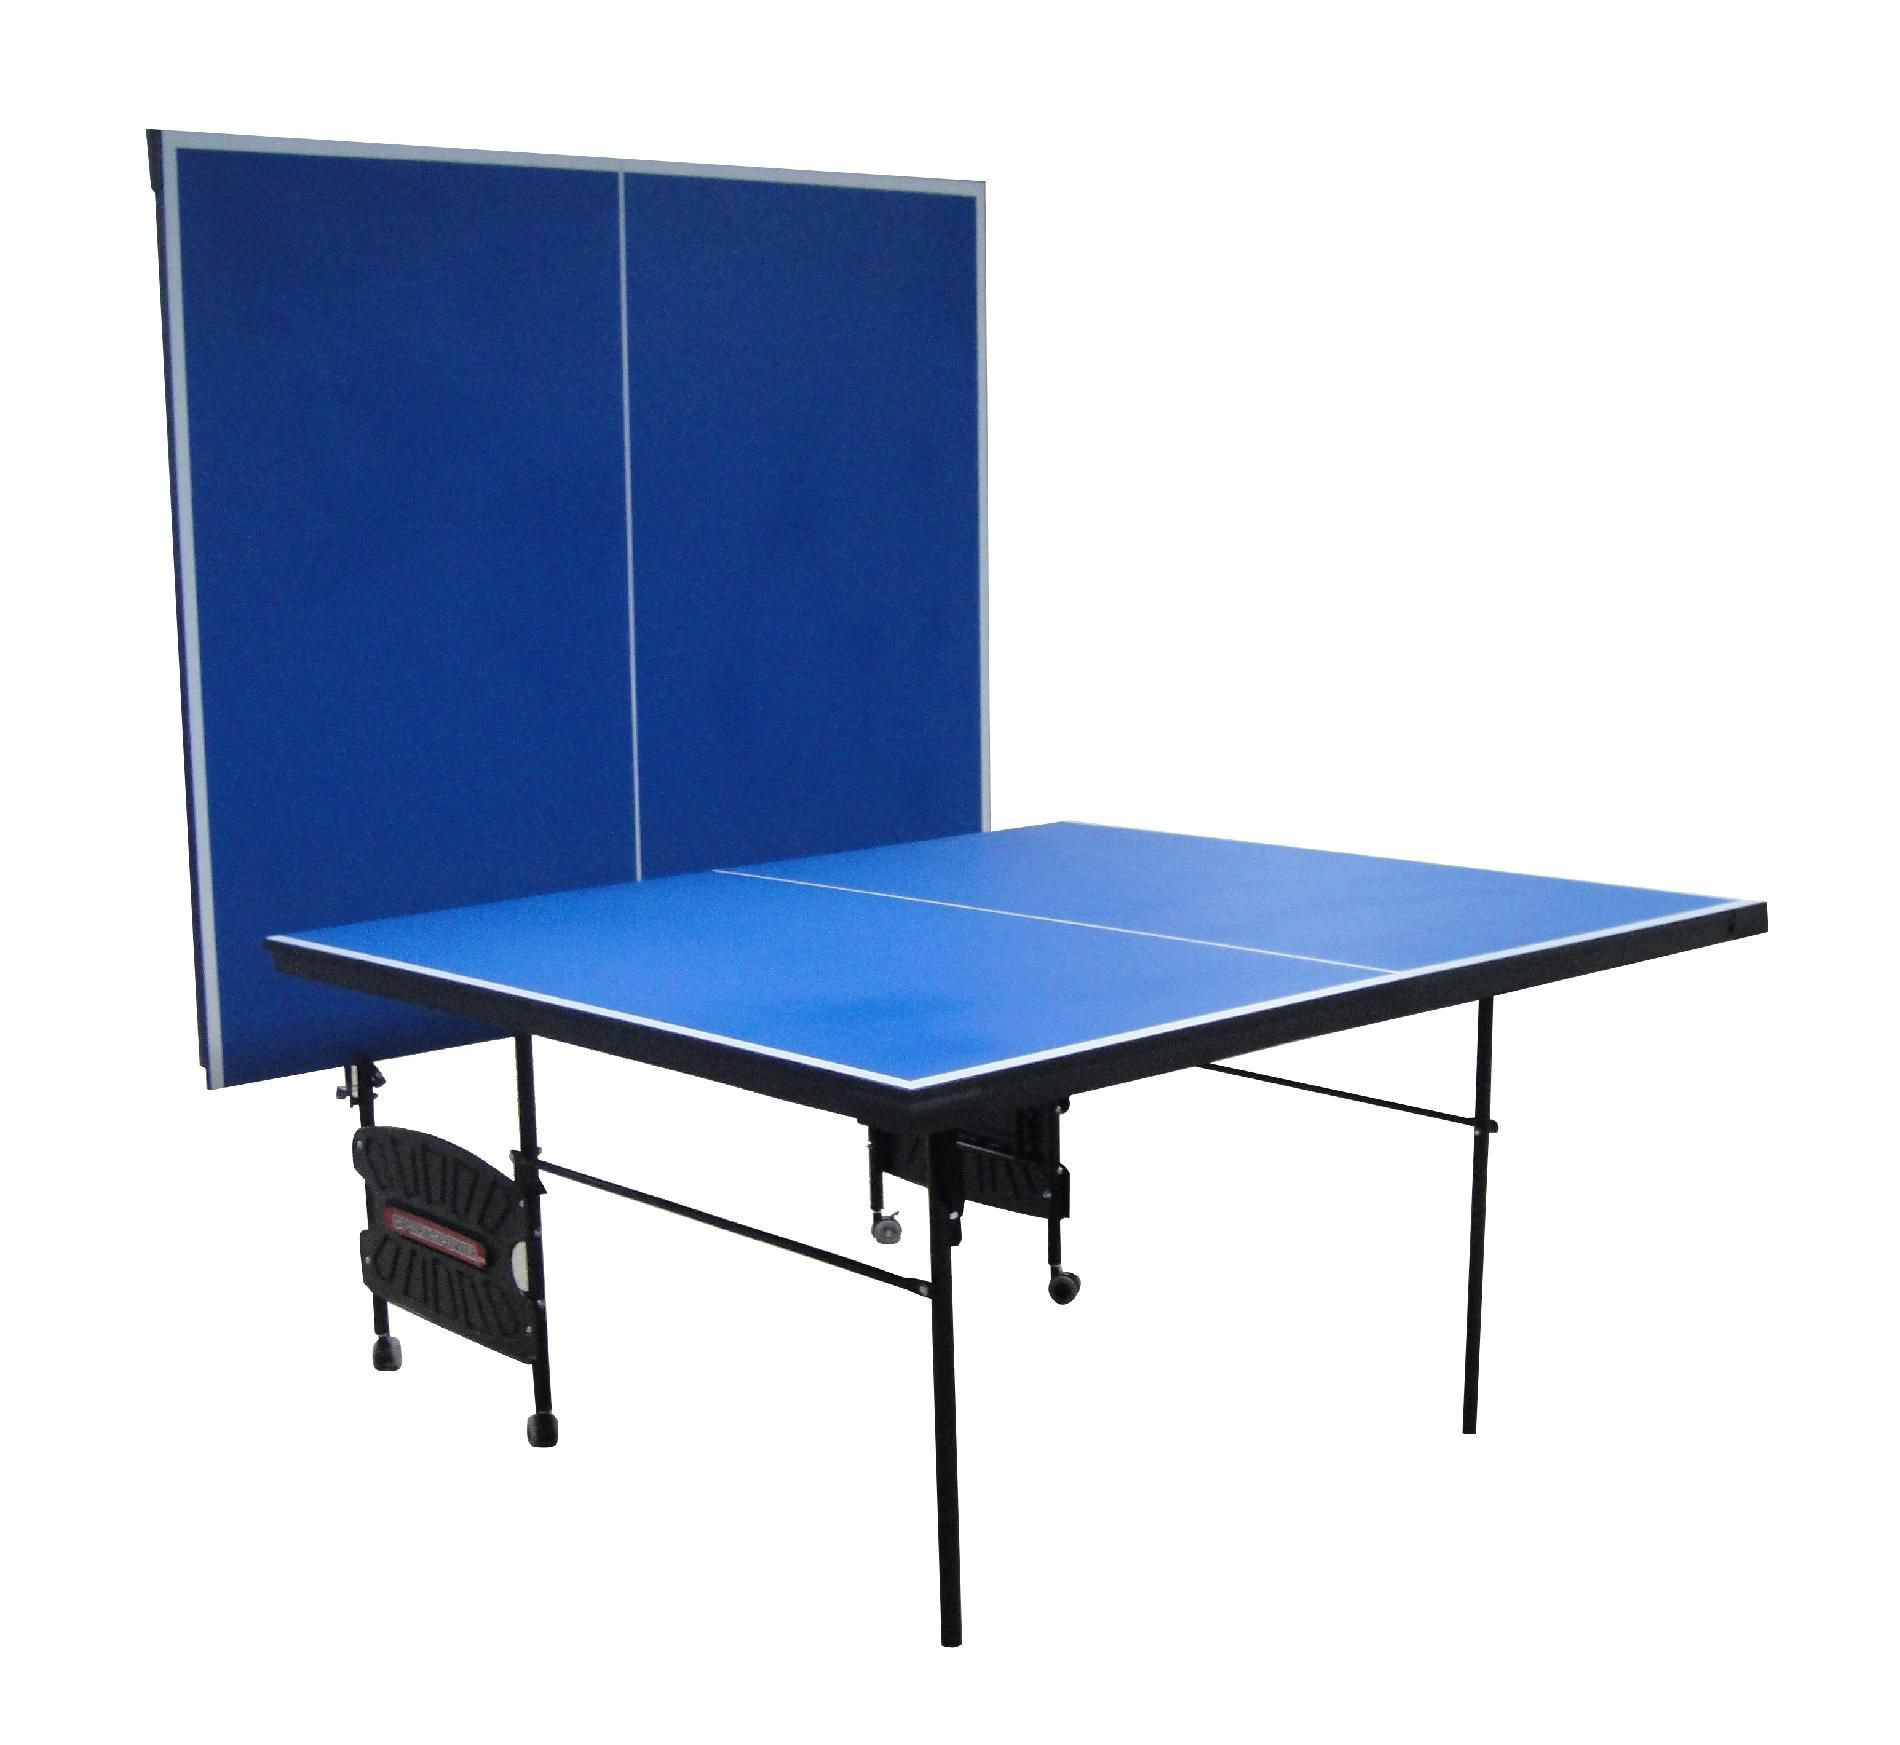 4 Pc Table Tennis Table Classic Tabletop Game From Sears Table Table Tennis Man Cave